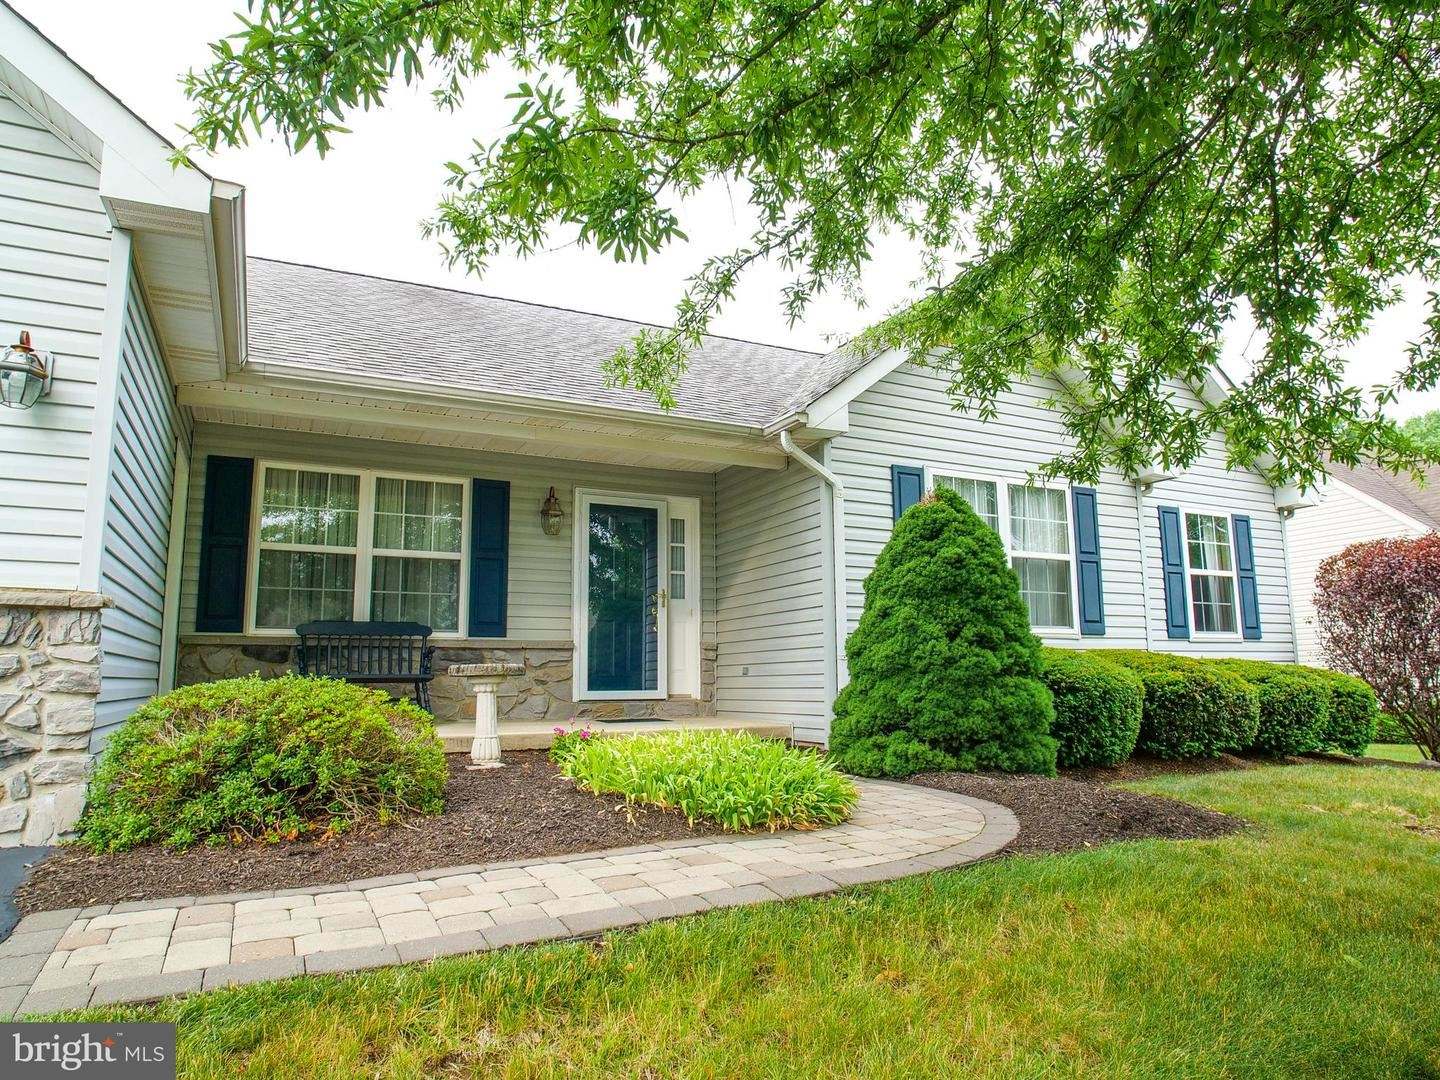 62 PRESIDENTIAL DR, Royersford, PA 19468 - #: PAMC653034